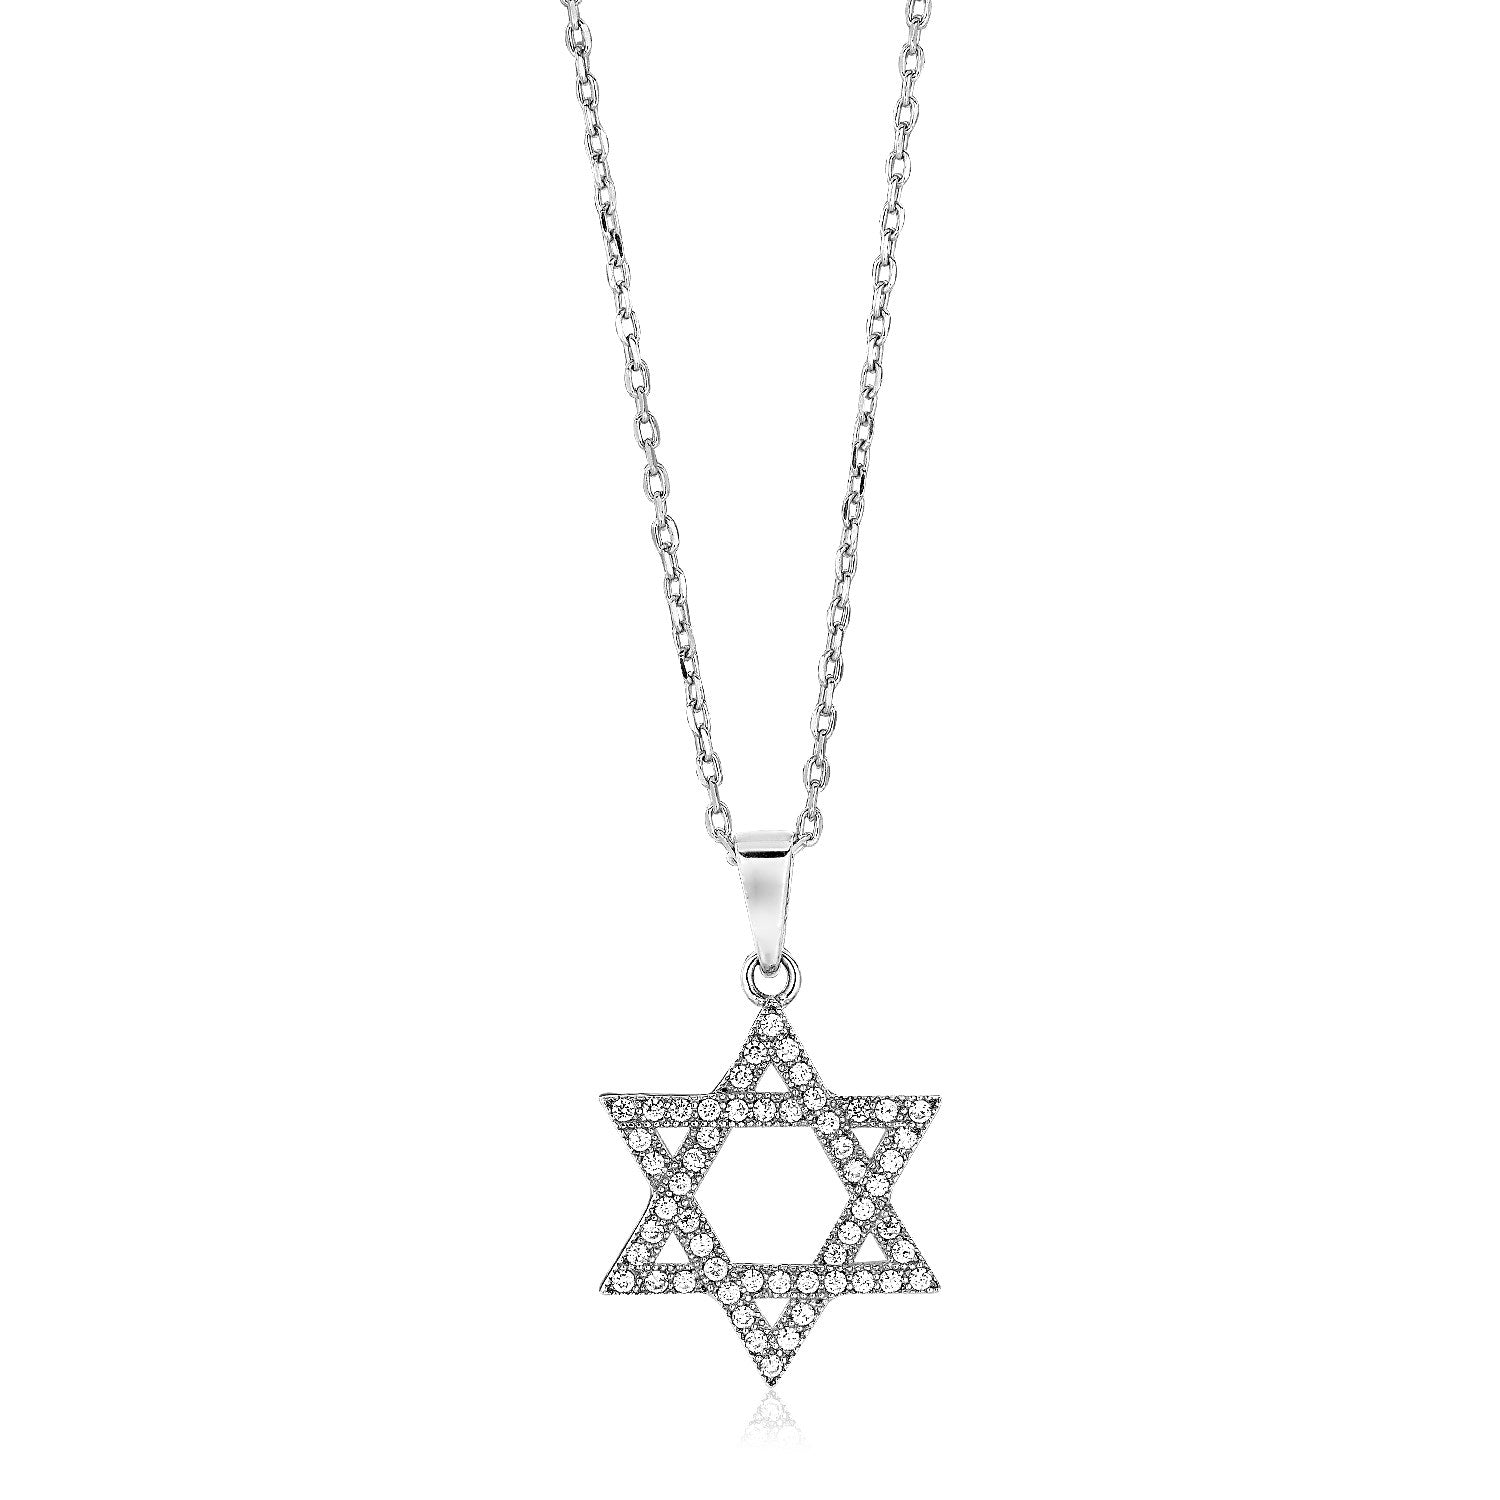 Sterling Silver Star of David Necklace with Cubic Zirconias